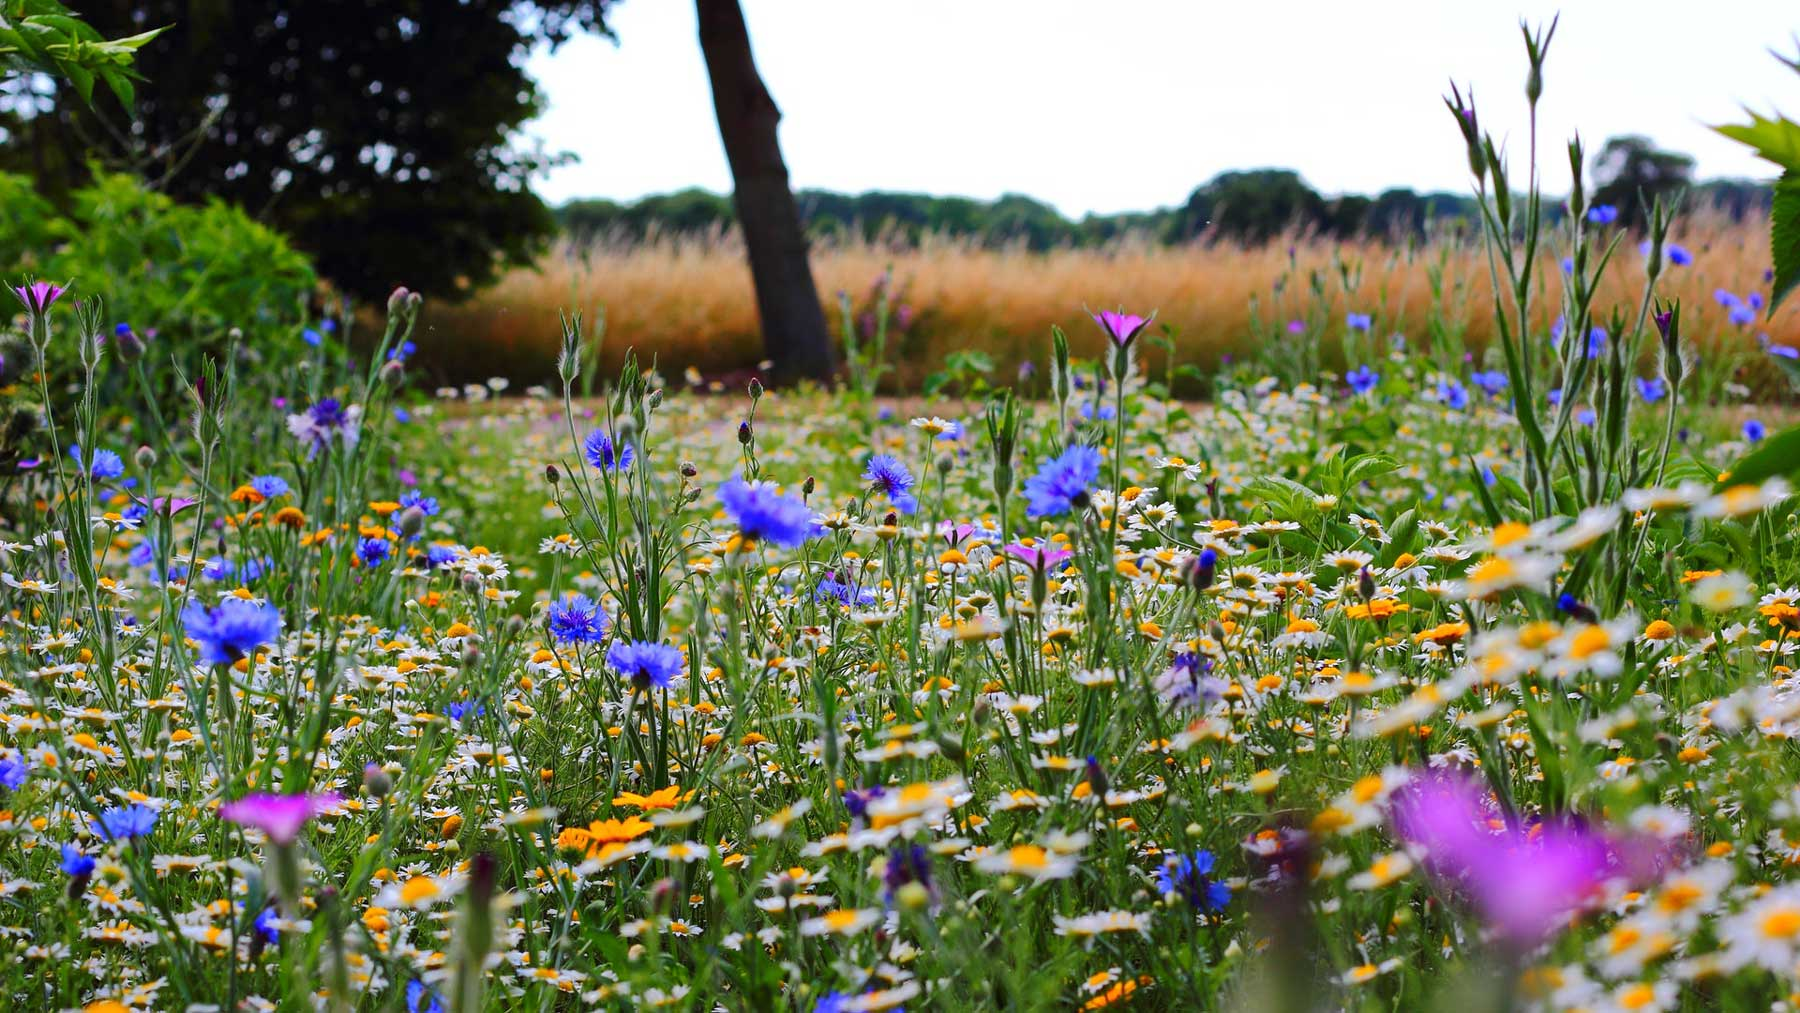 field full of blue, purple and yellow wild flowers